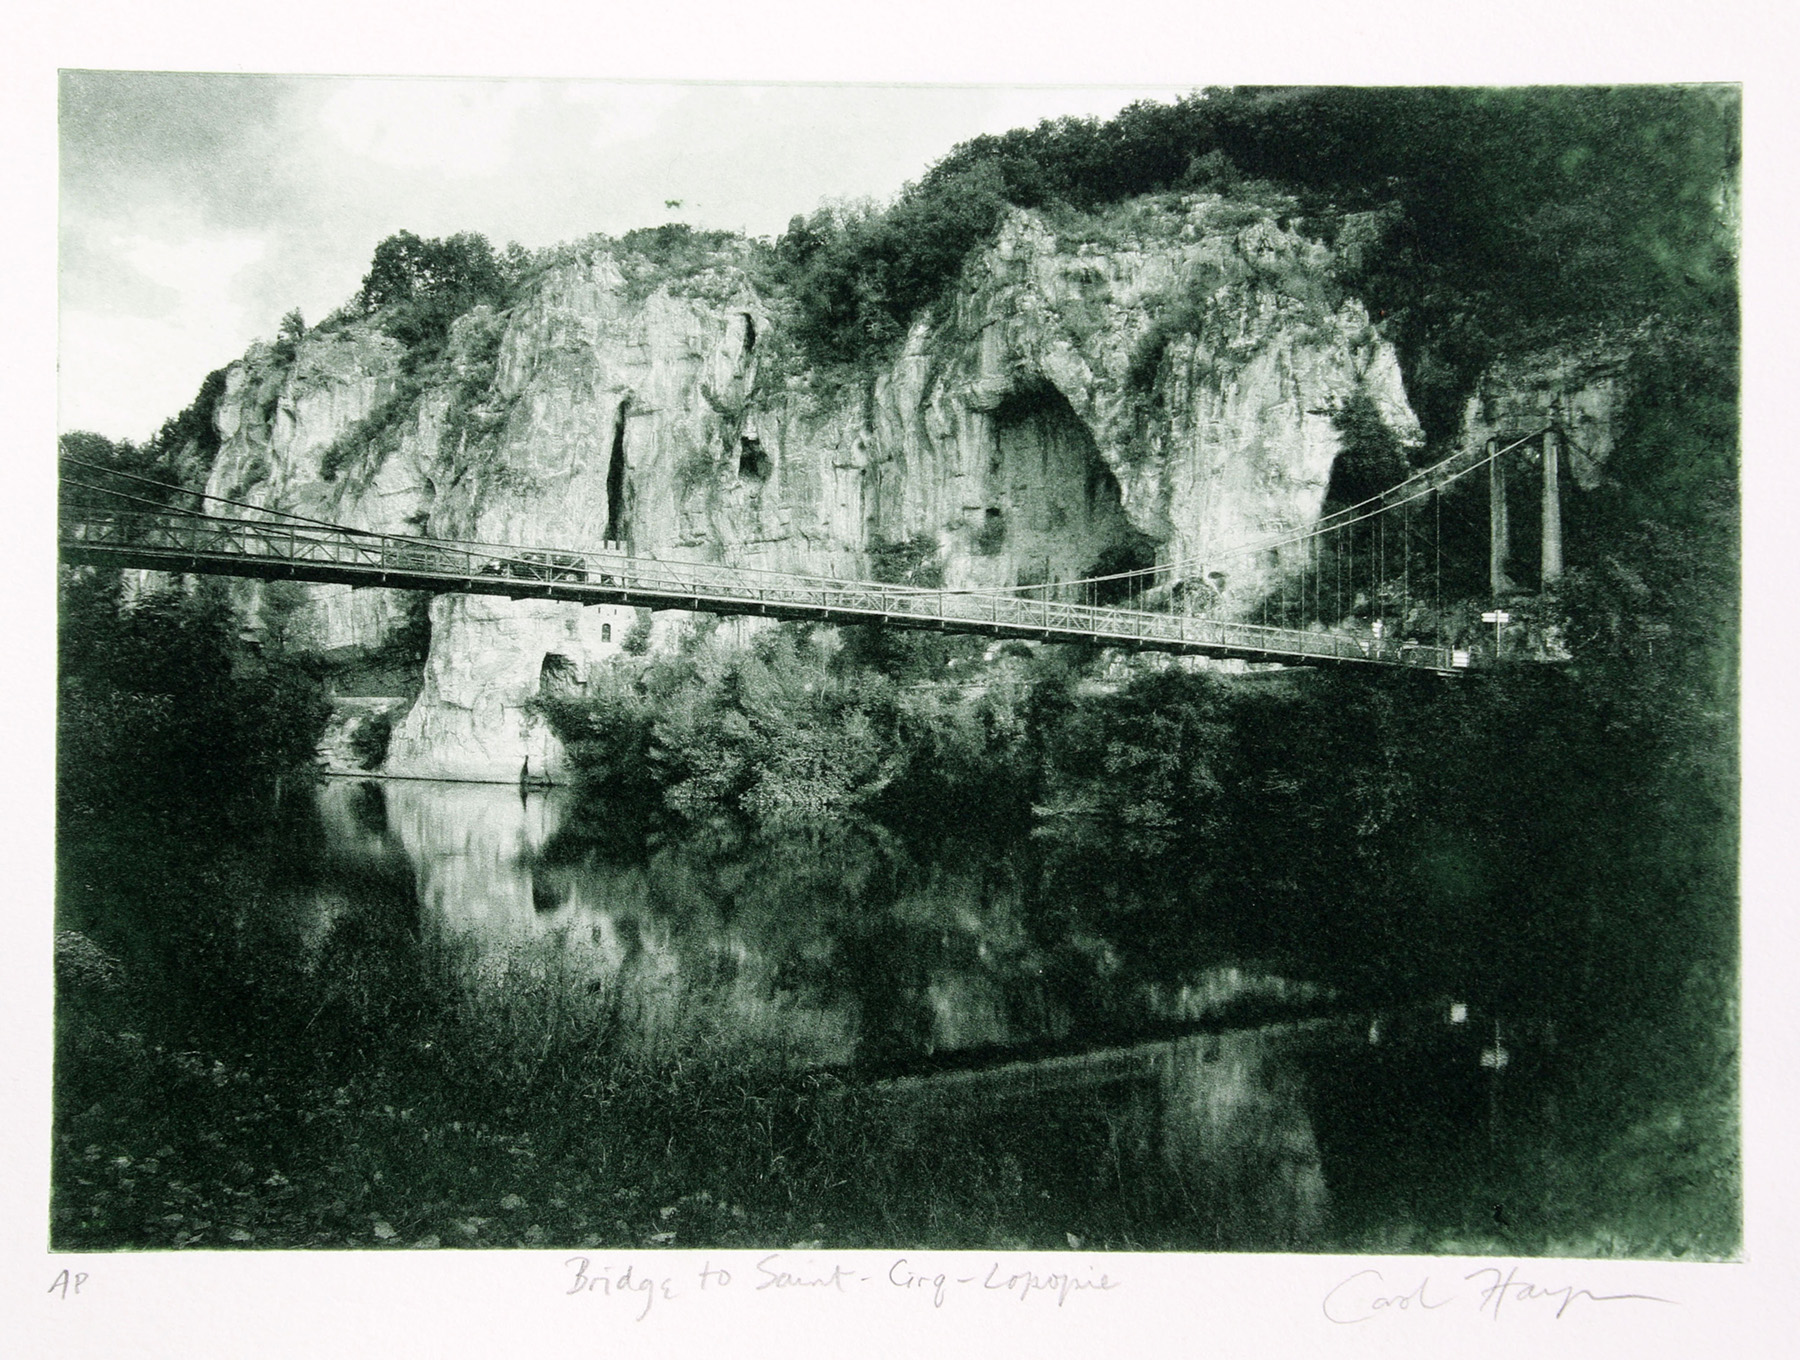 Bridge to Saint-Cirq-Lapopie